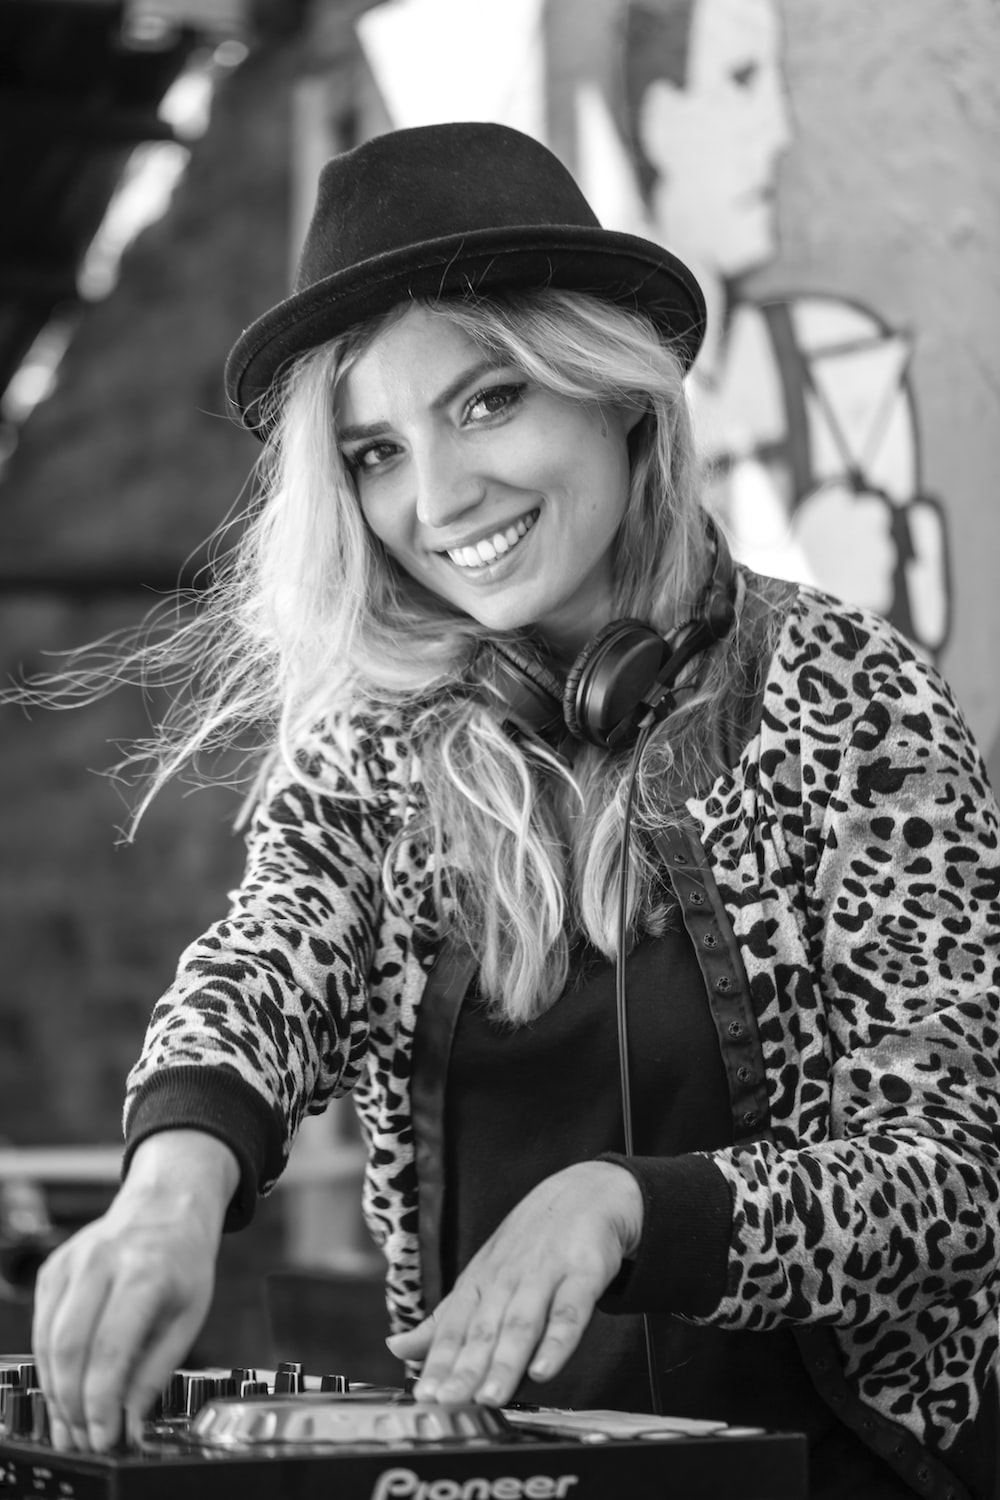 grayscale photo of woman wearing leopard print coat and hat